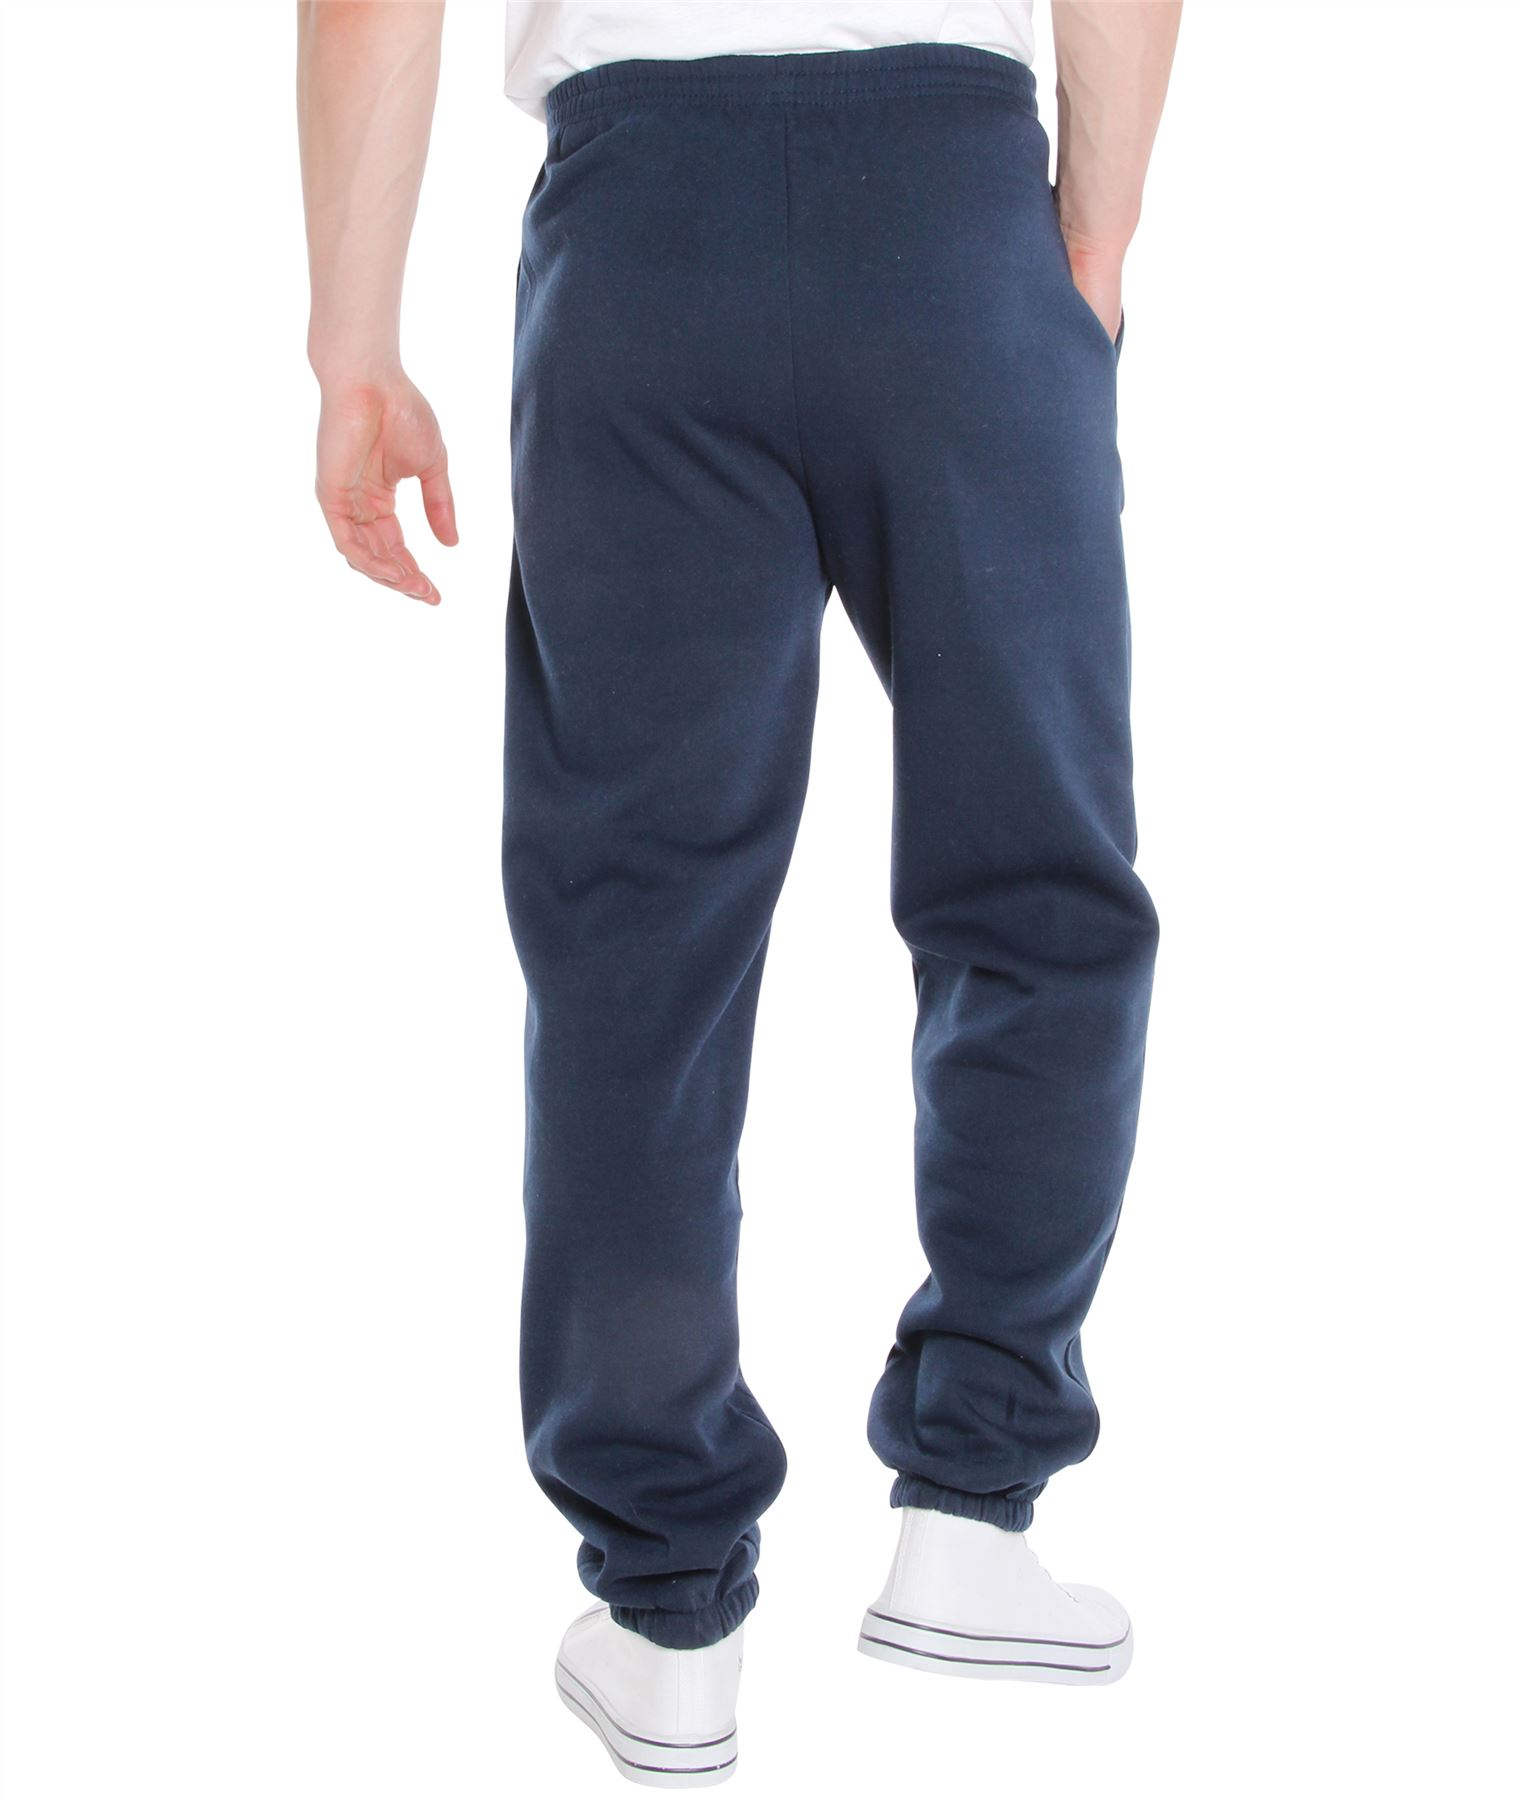 Mens Tracksuit Bottoms Striped Joggers Jogging Trousers Fleece Pants Casual Work